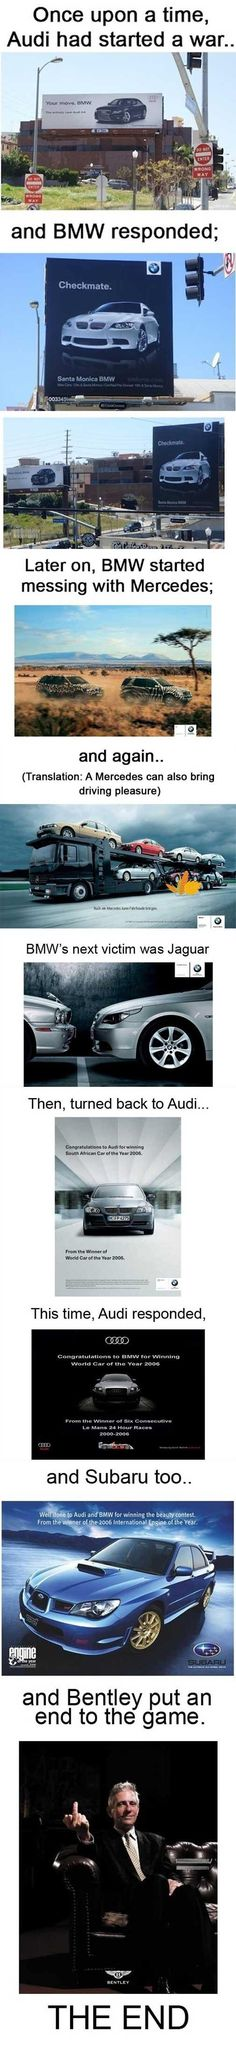 BMW's advertisement war! Audi Begin the war ! Funny add ( on board ) war between car brand ! Audi Vs BMW Vs Mercedes Vs Jaguar Vs Subaru(really Subaru?) Vs Bentley ! The End of the Story thanks to Bentley !!!???